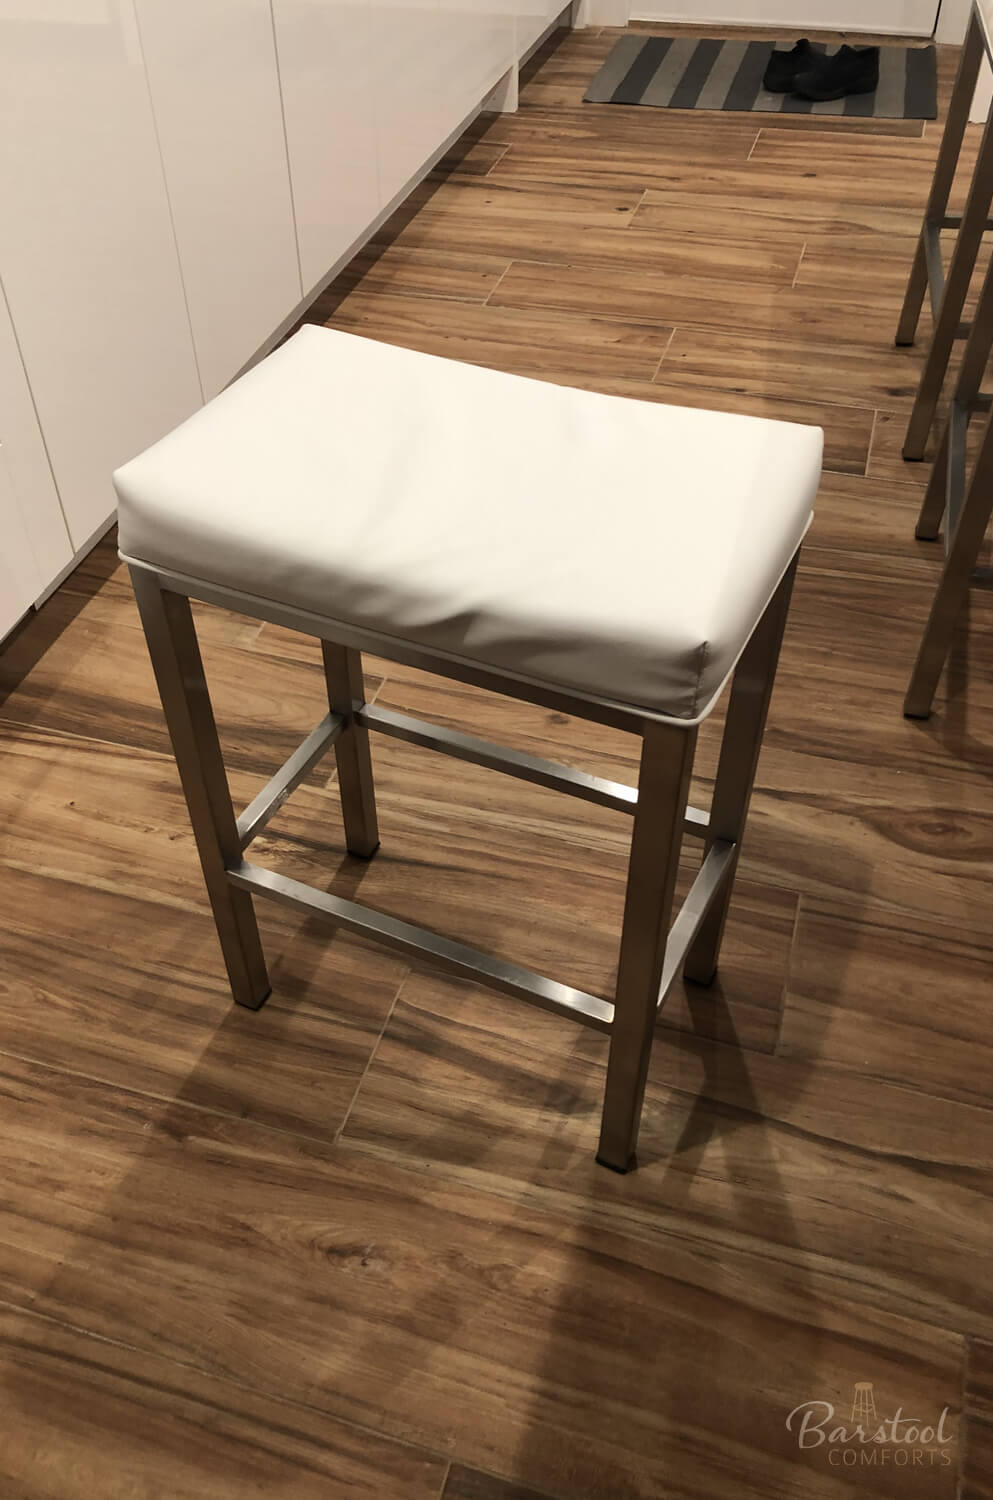 Buy Wesley Allen S Seattle Backless Modern Saddle Stool Free Shipping